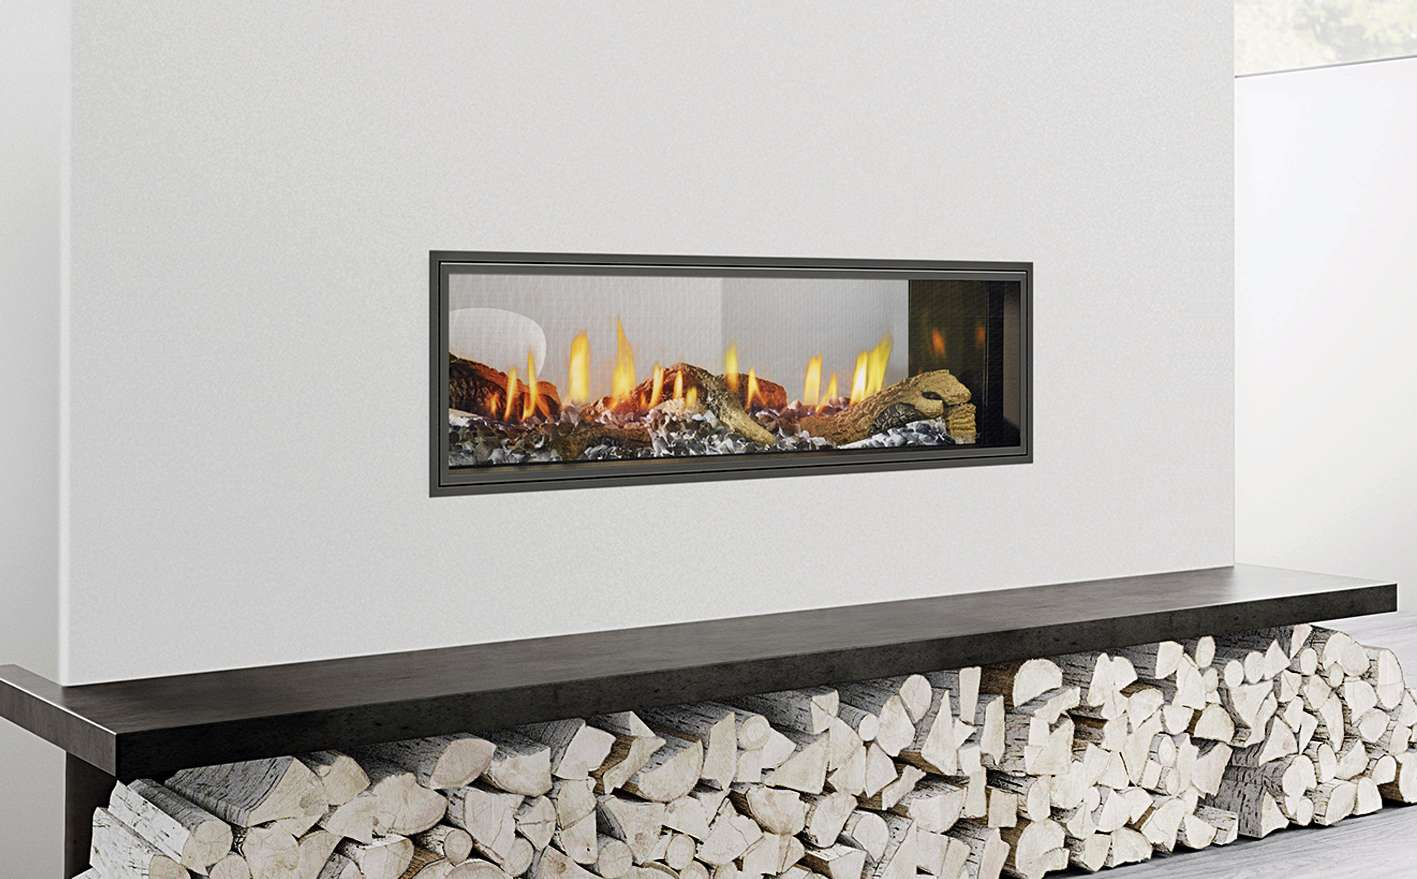 Simplistic gas fire with wooden logs